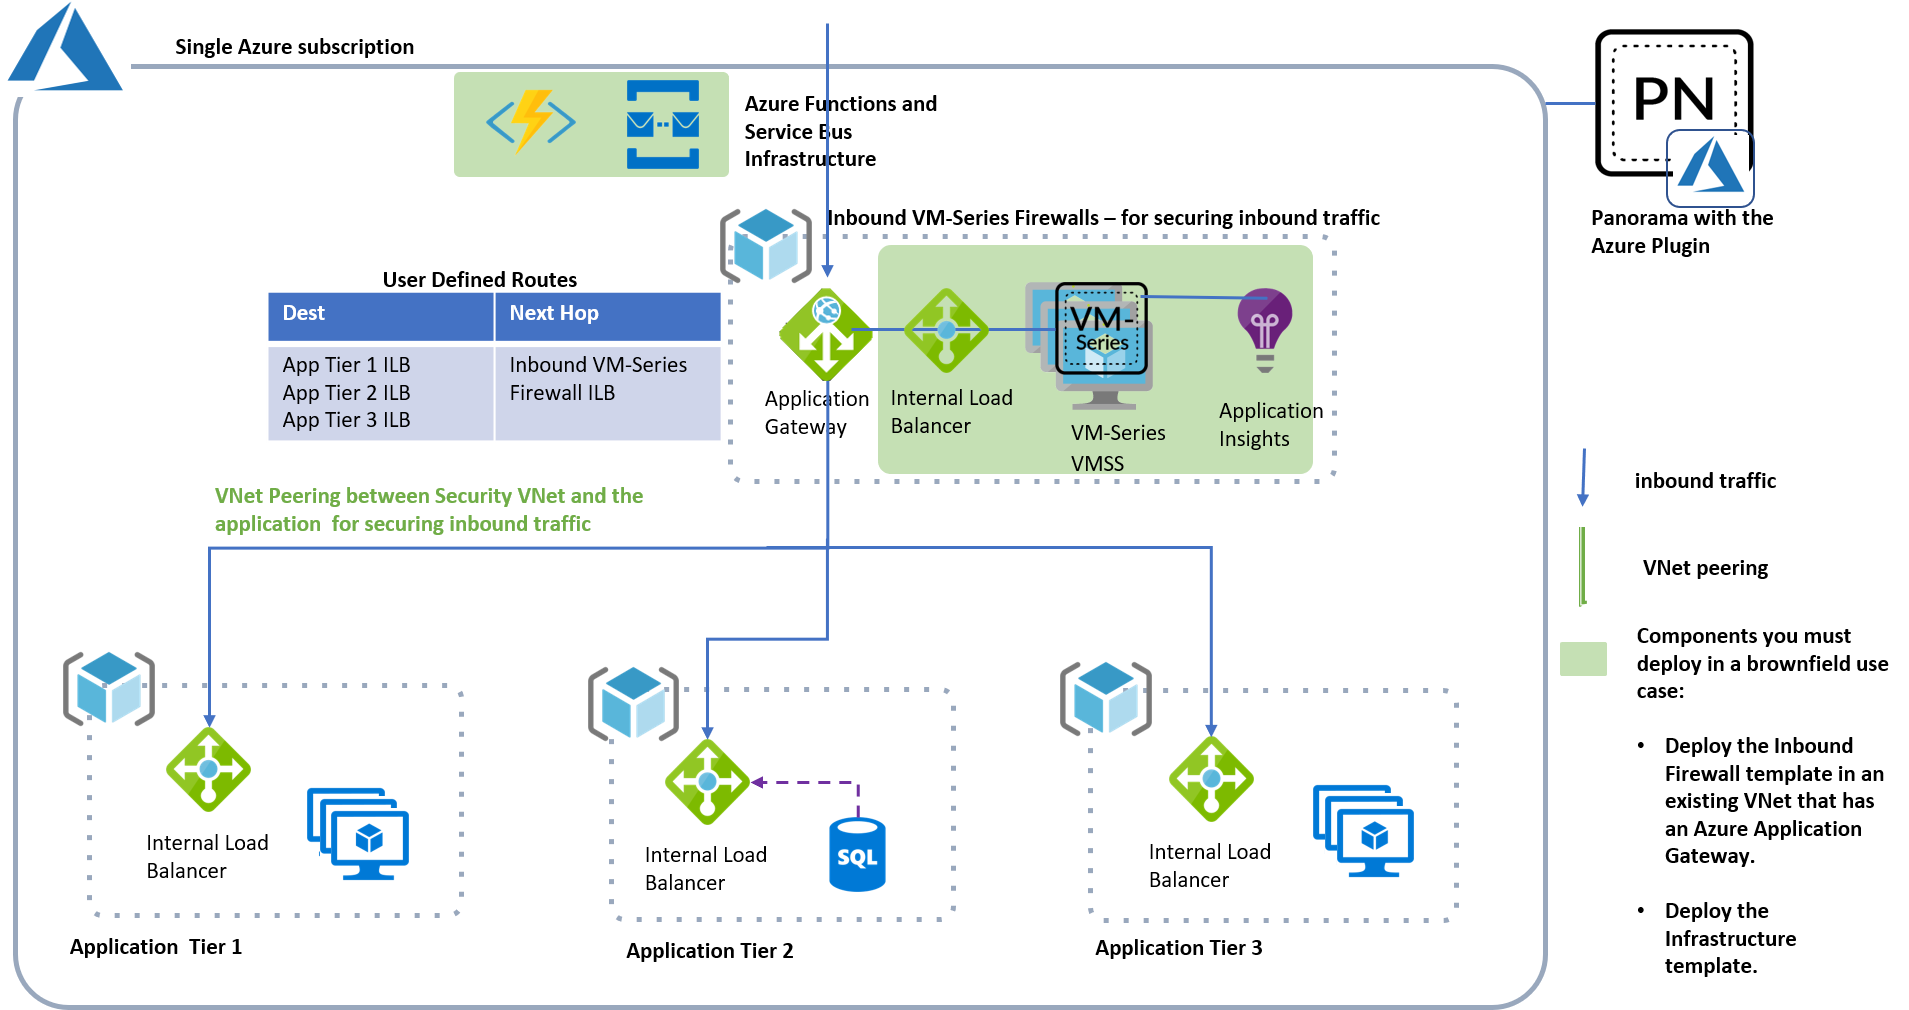 azure-autoscaling-concept-brownfield.png